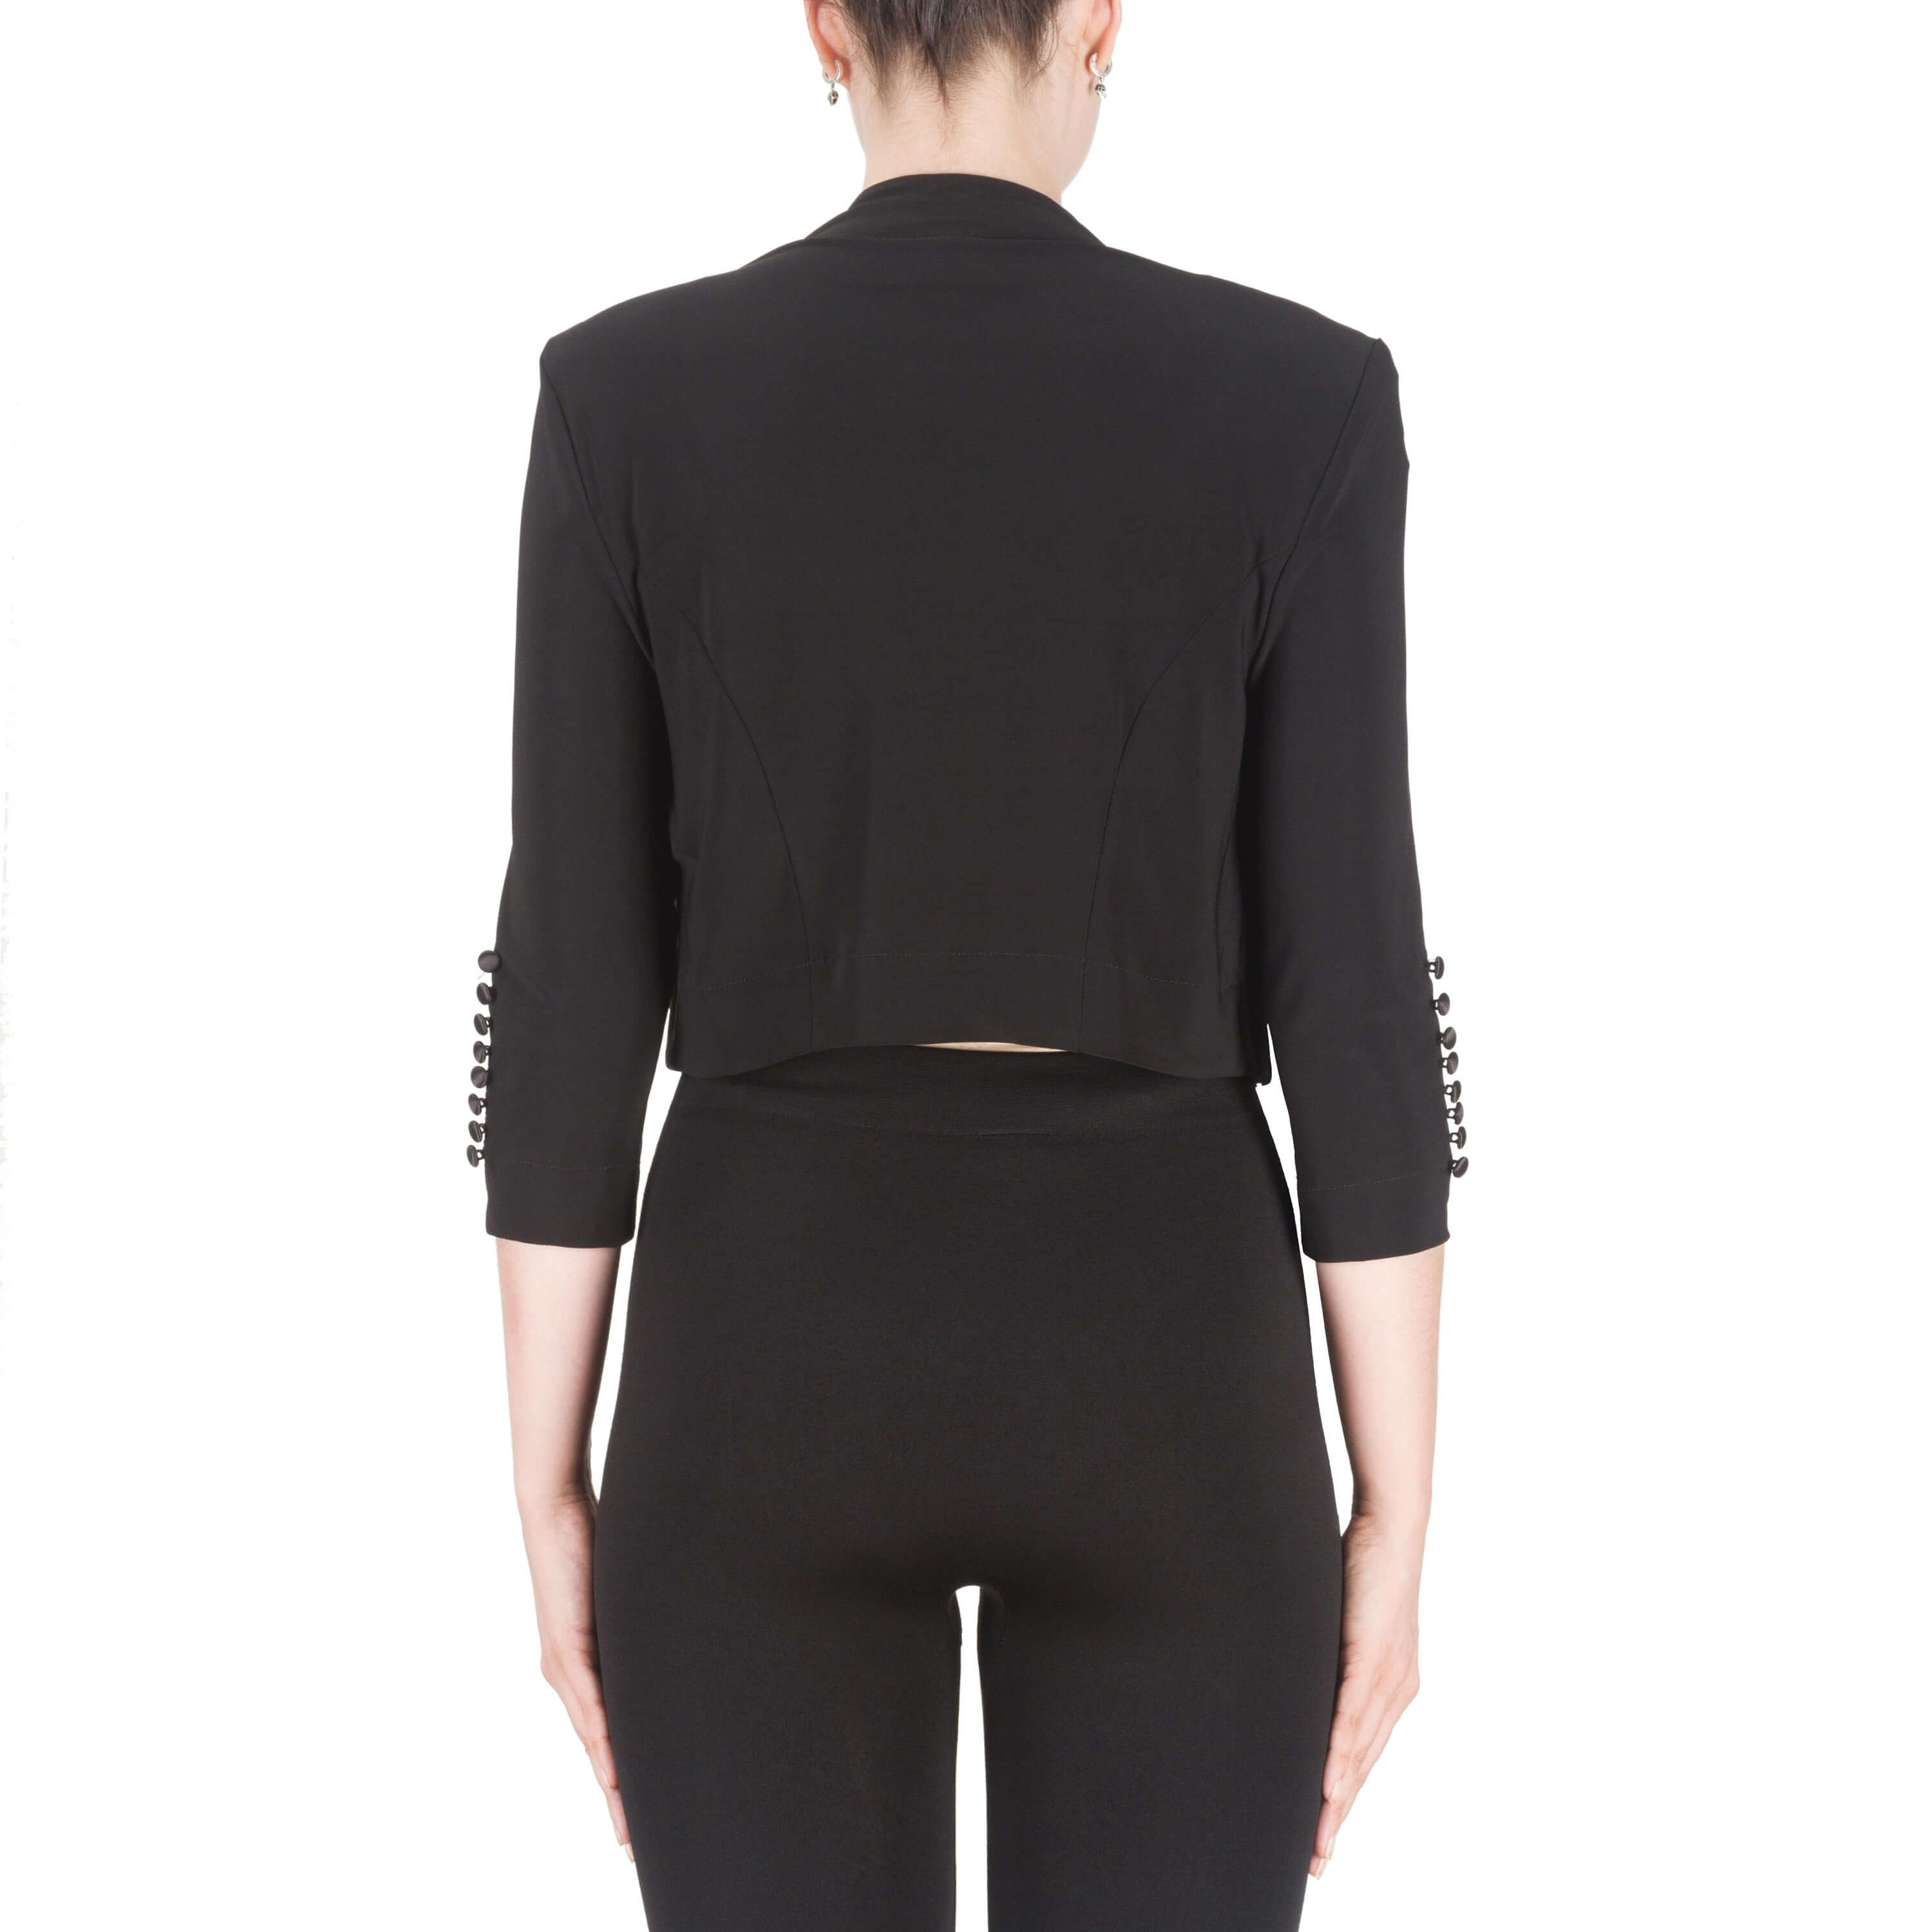 Joseph Ribkoff Jersey Bolero in Black or Midnight 32083